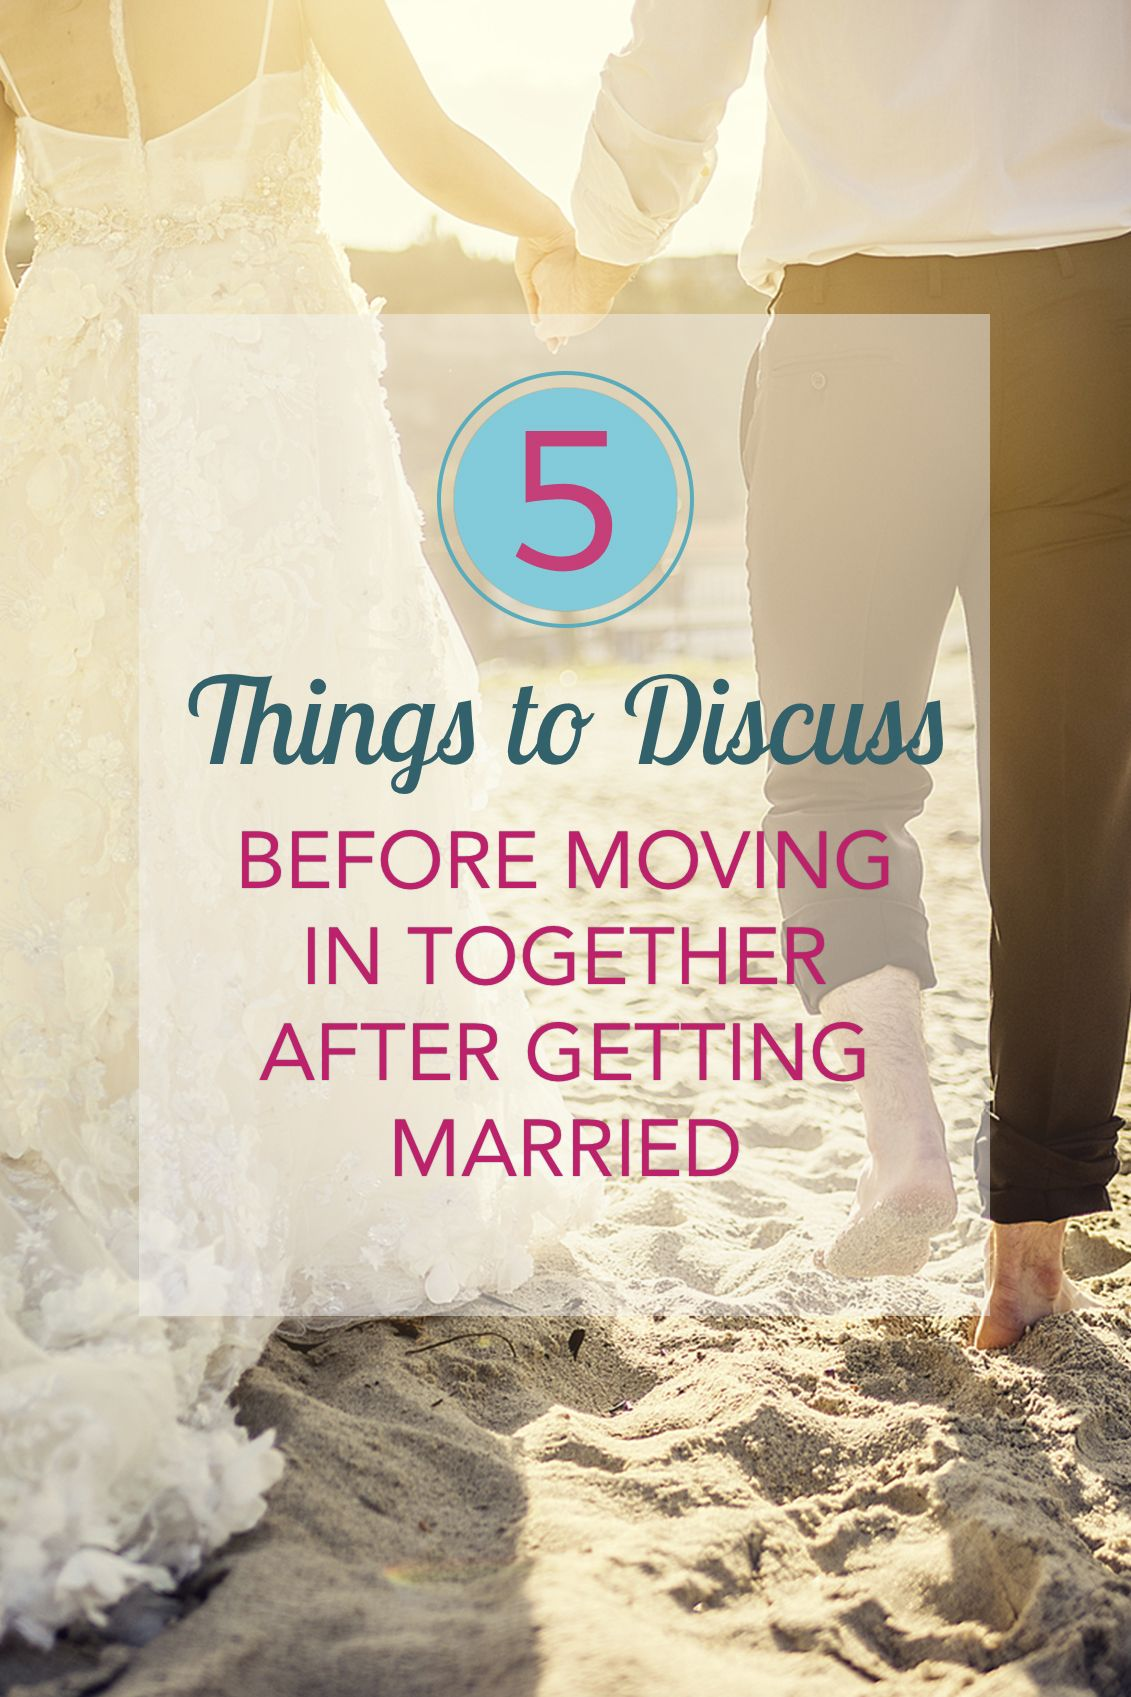 Things to discuss before moving in together